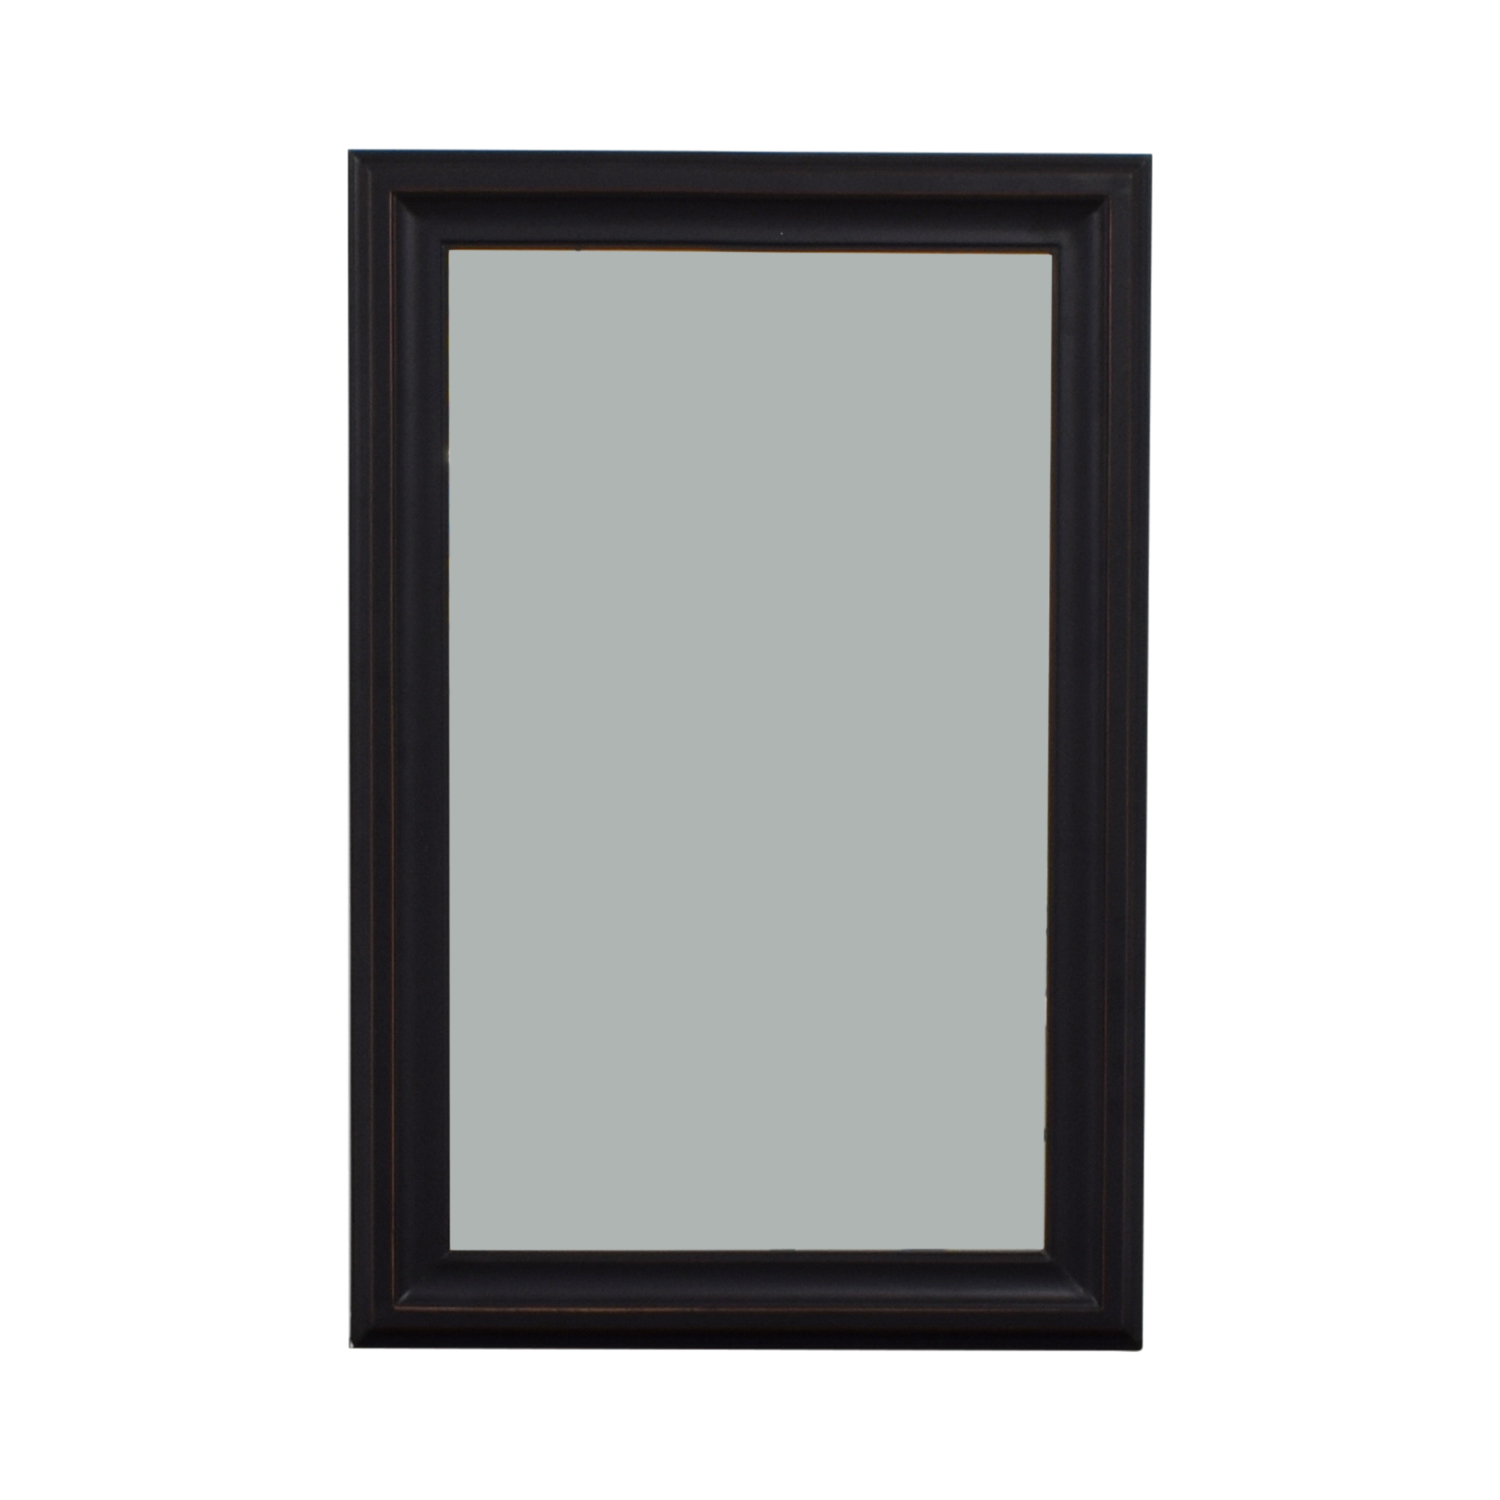 Howard Elliot Collection Howard Elliot Collection Black Framed Mirror nj